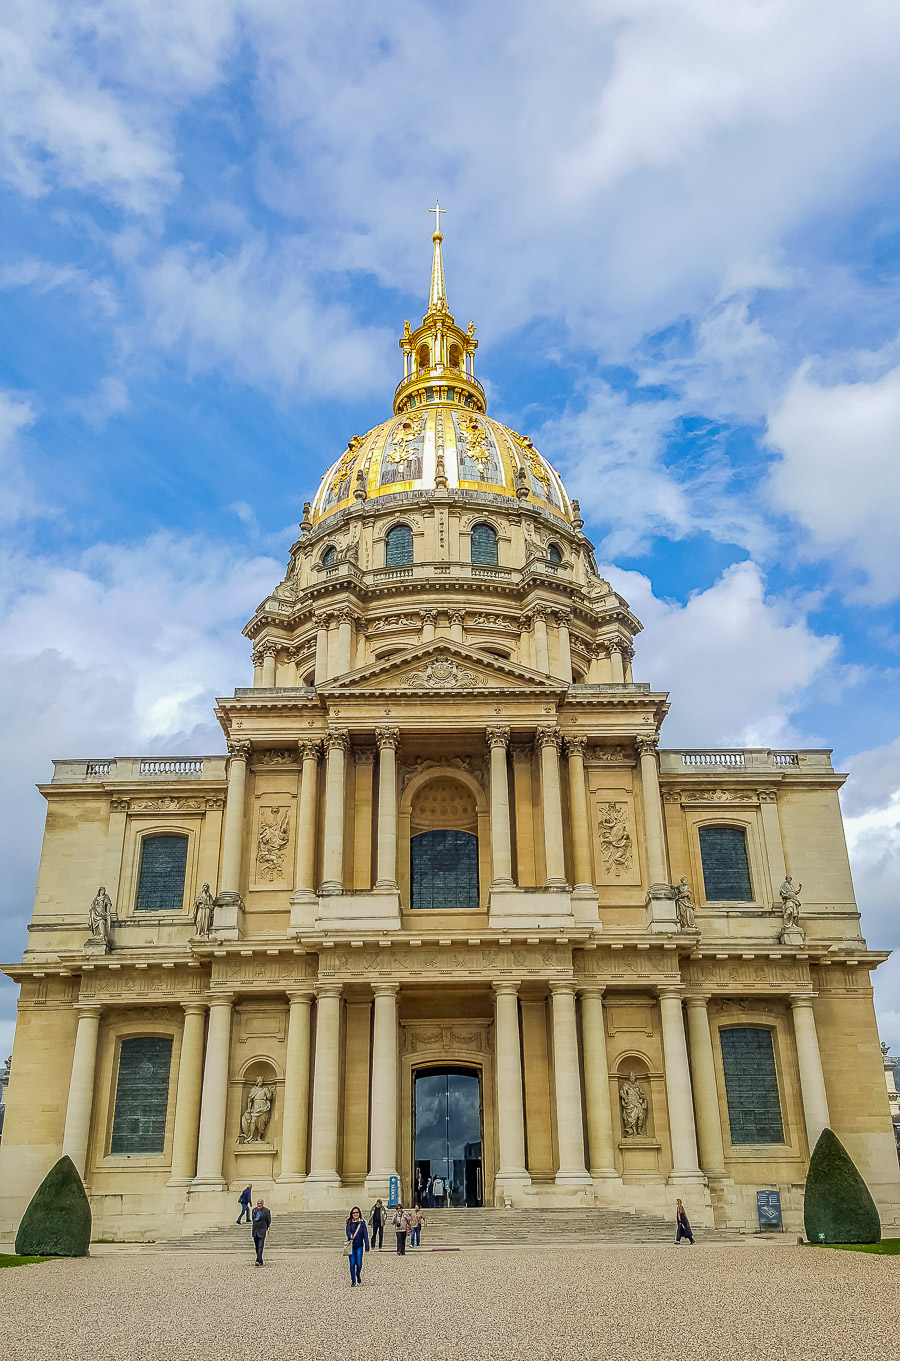 The Royal Chapel or Dome des Invalides